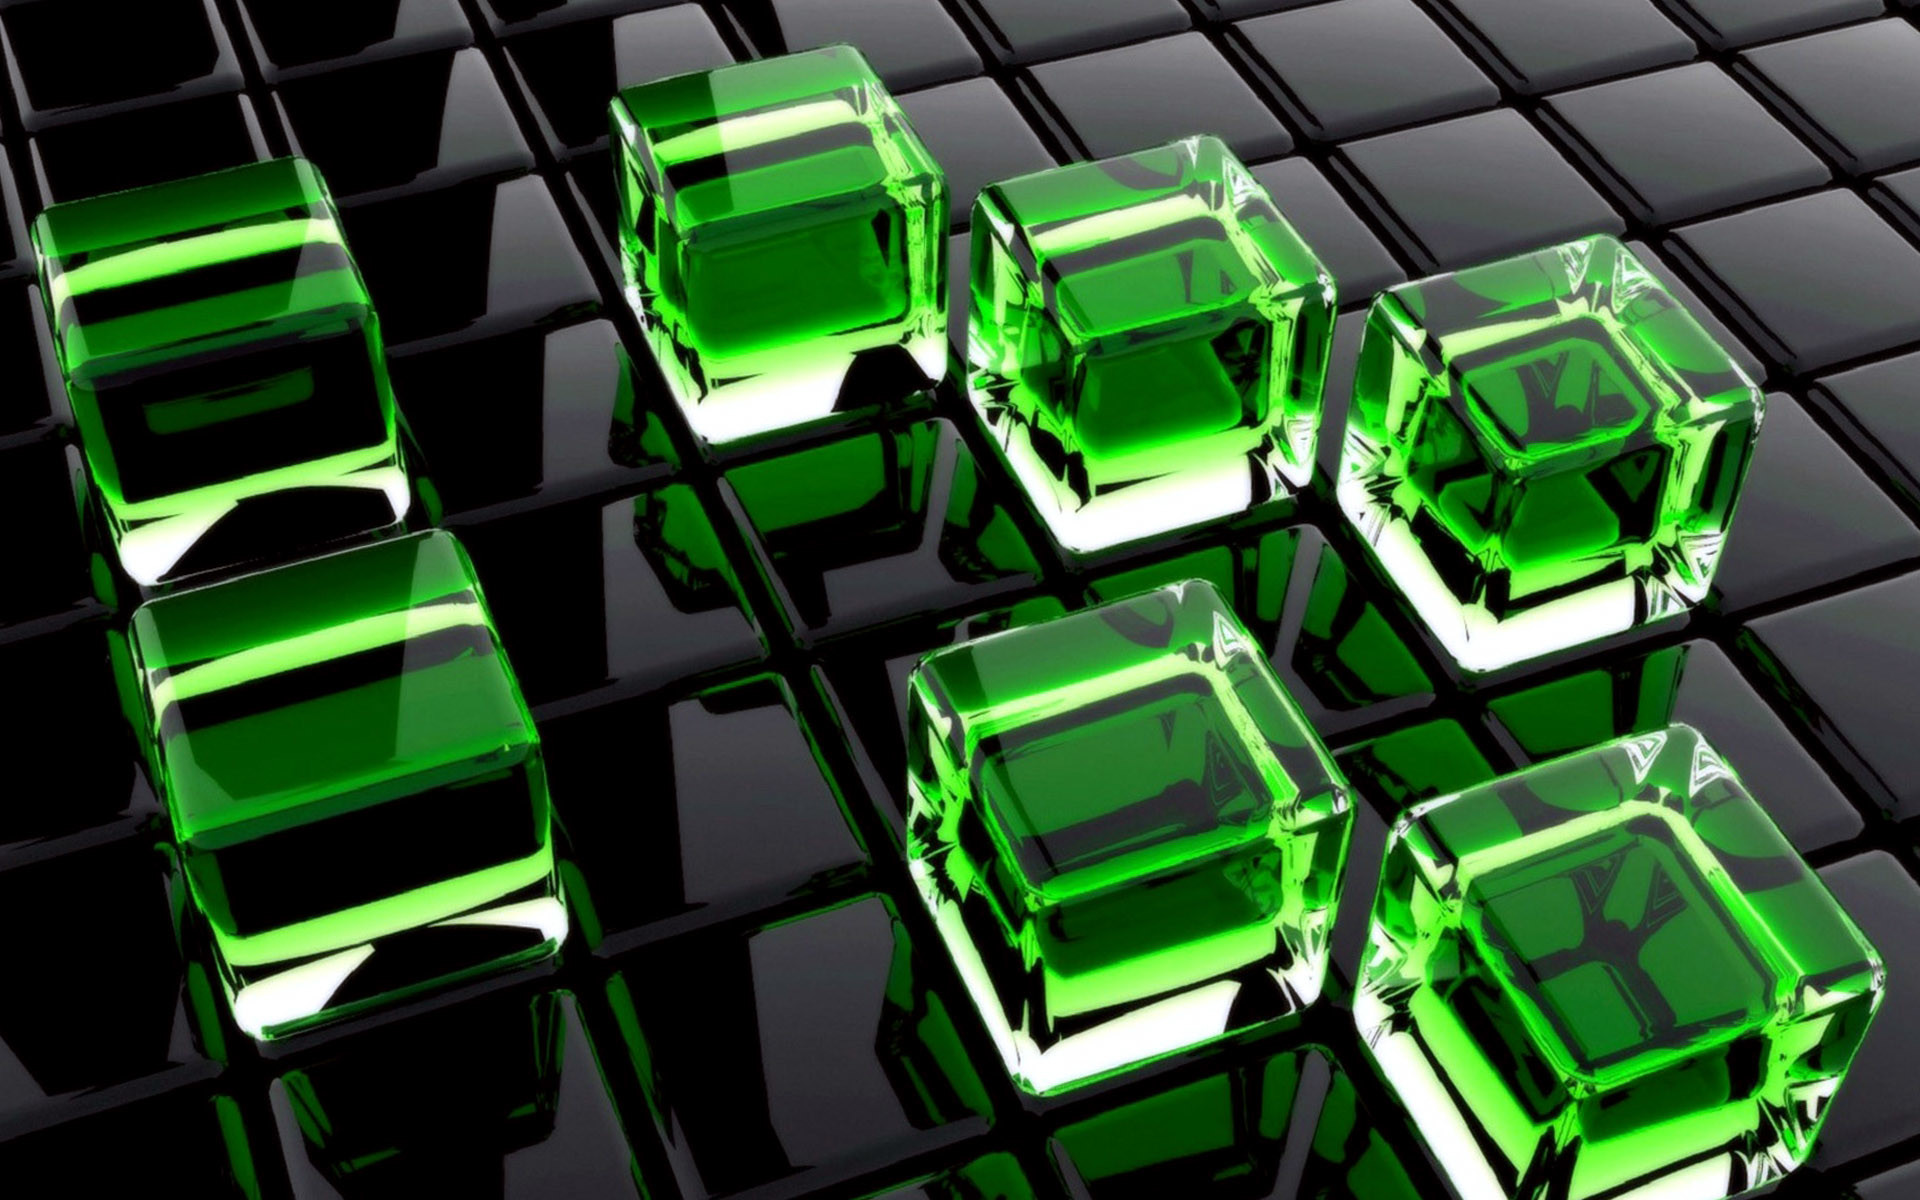 Rubiks Cube HD Wallpapers Backgrounds Wallpaper | 3D Wallpapers | Pinterest  | 3d wallpaper, Wallpaper and Wallpaper backgrounds